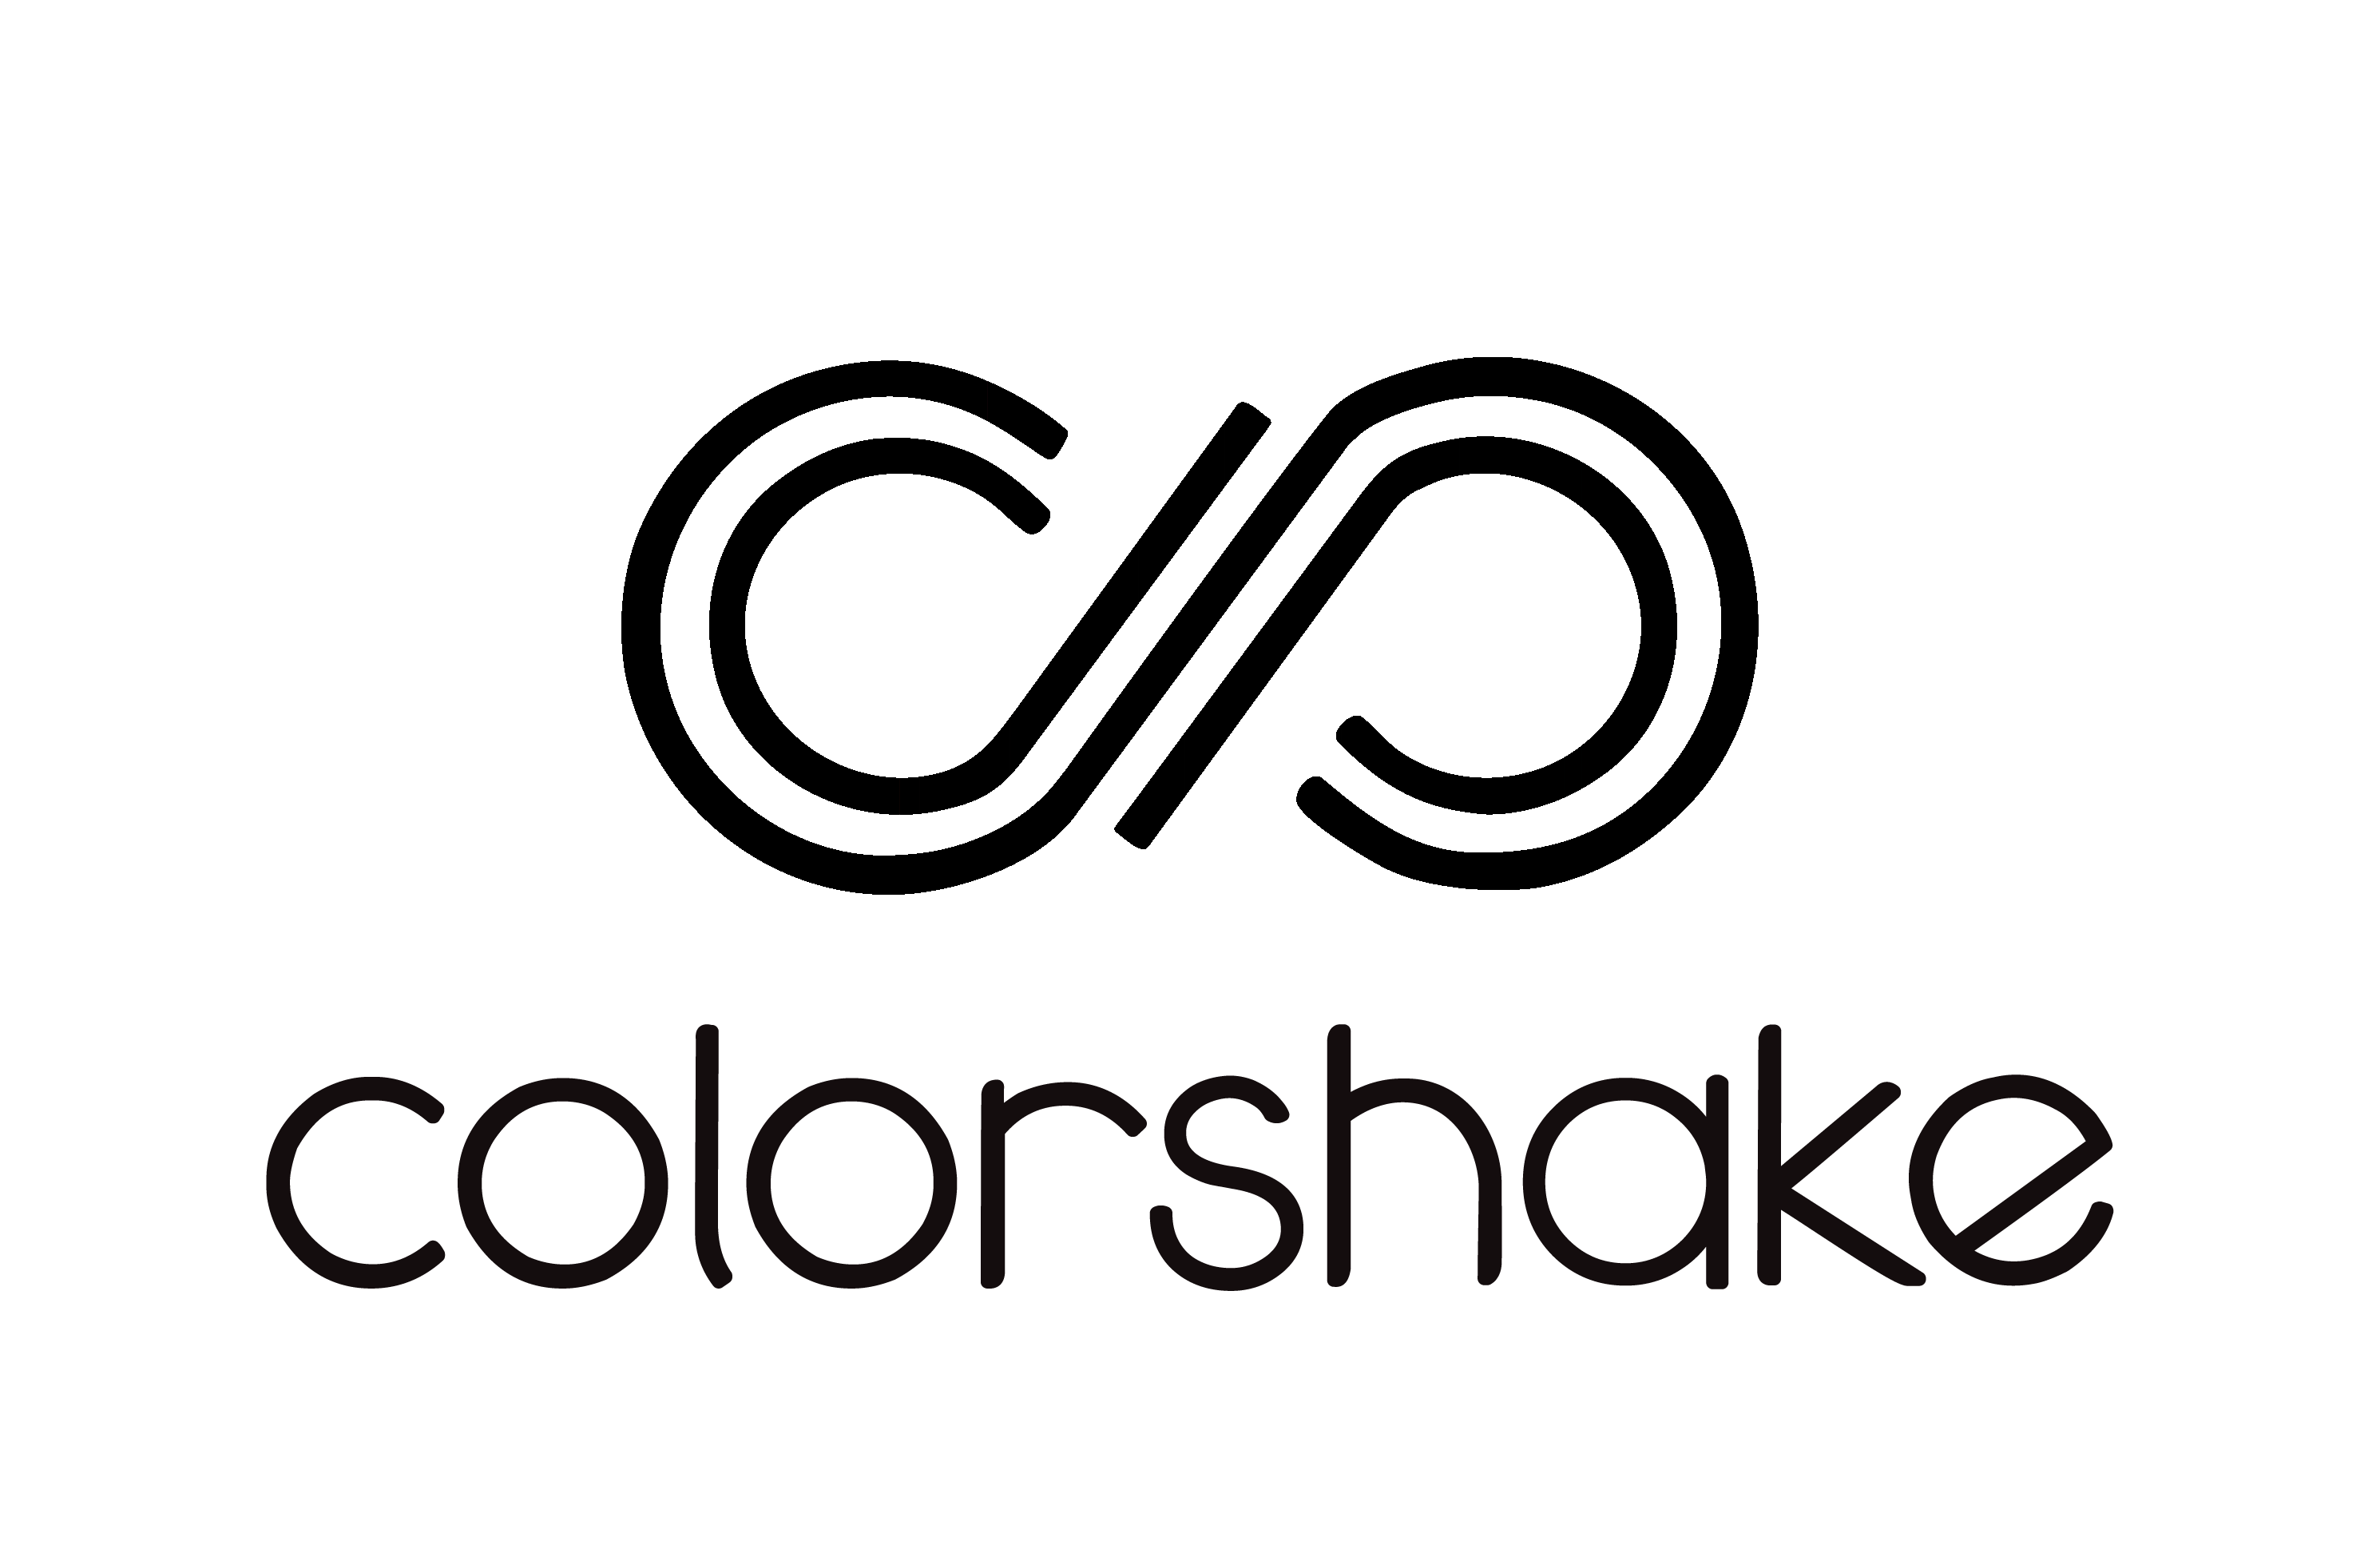 Read Colorshake Store Reviews